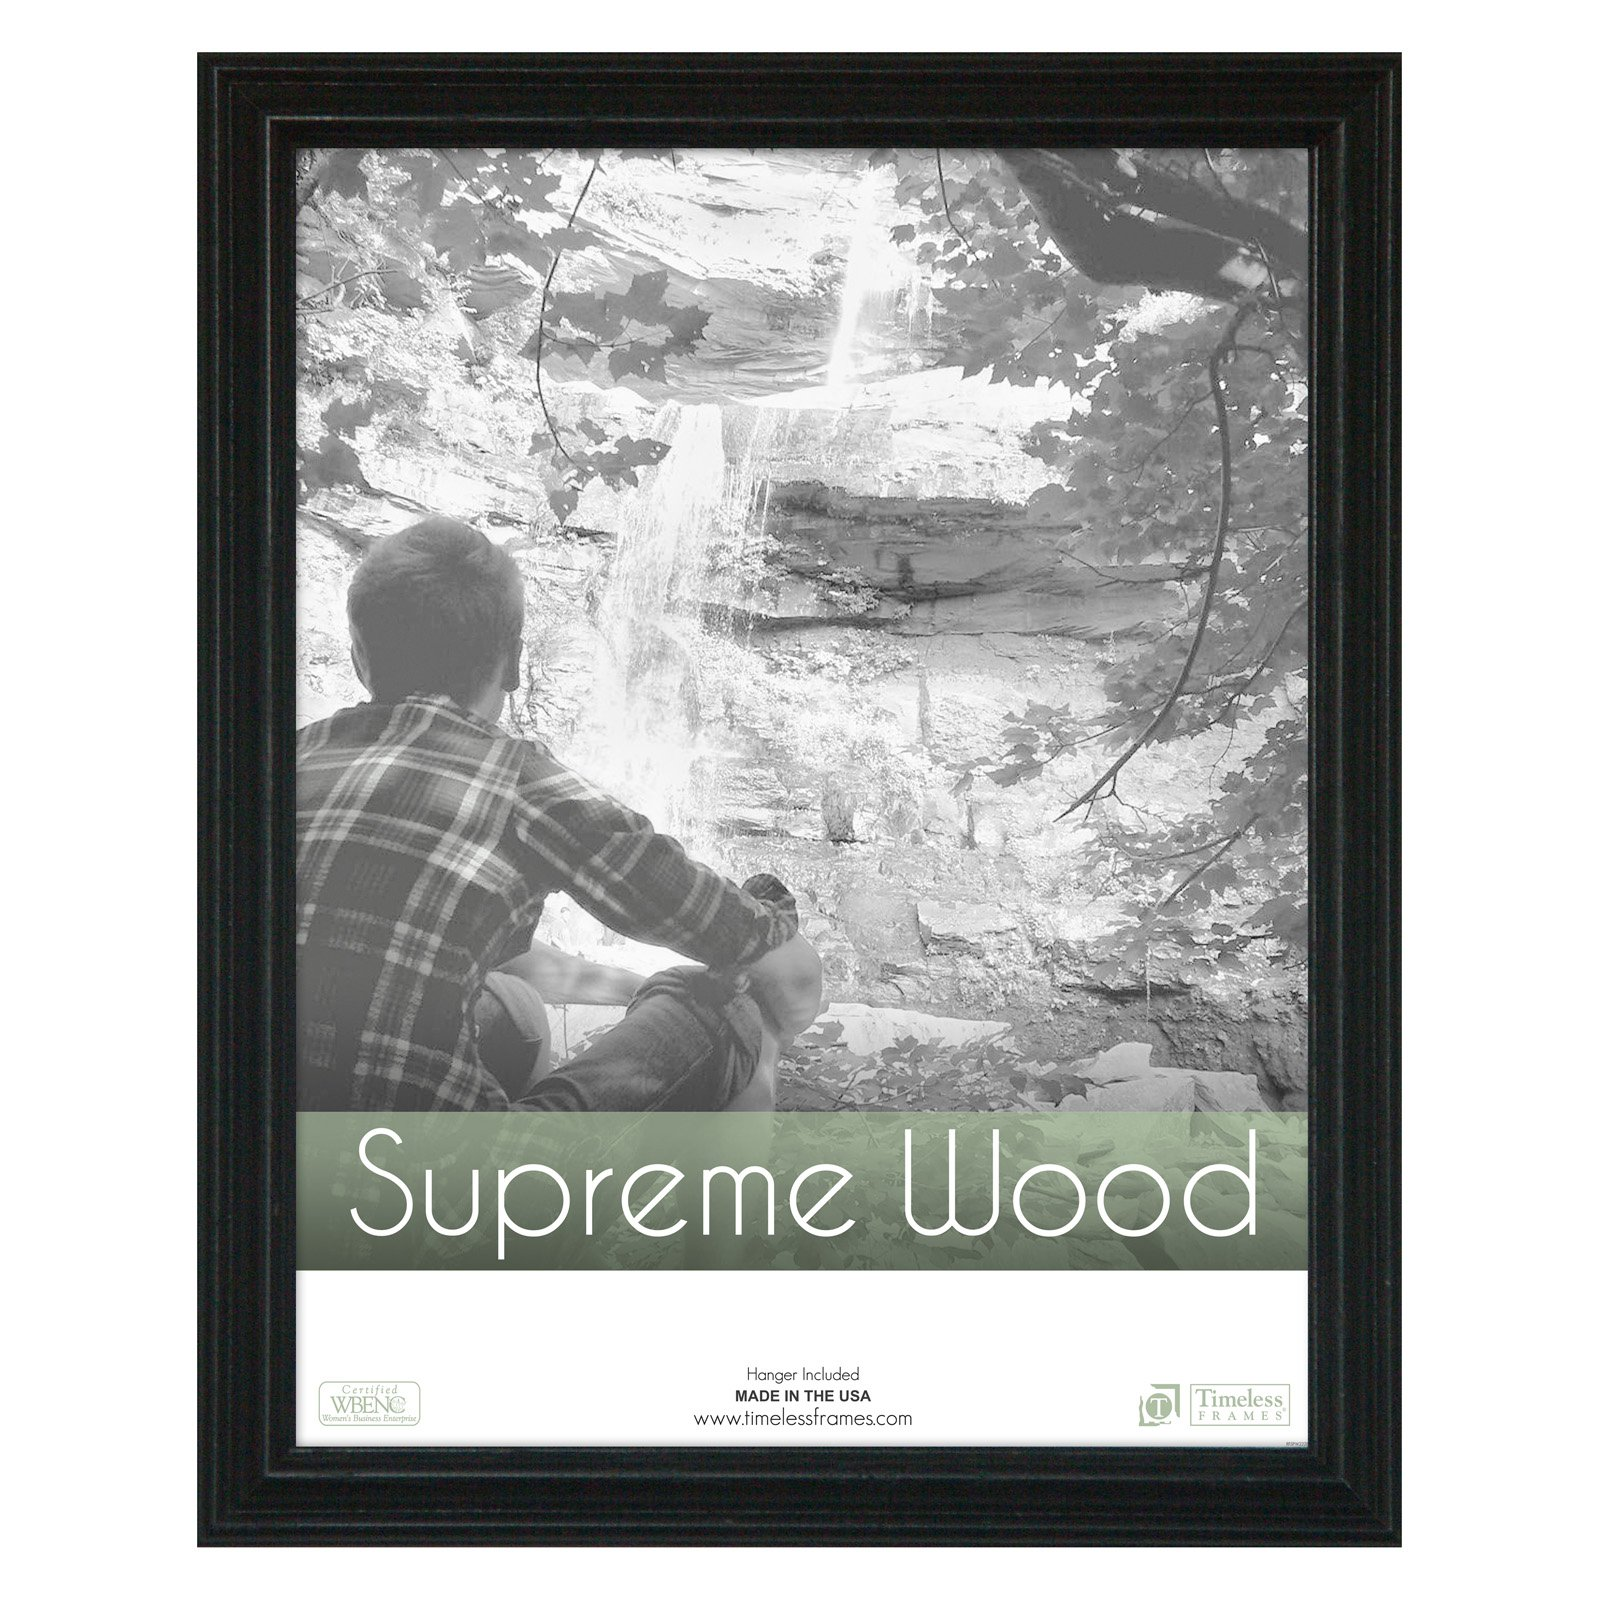 Supreme Woods Picture Frame - Black